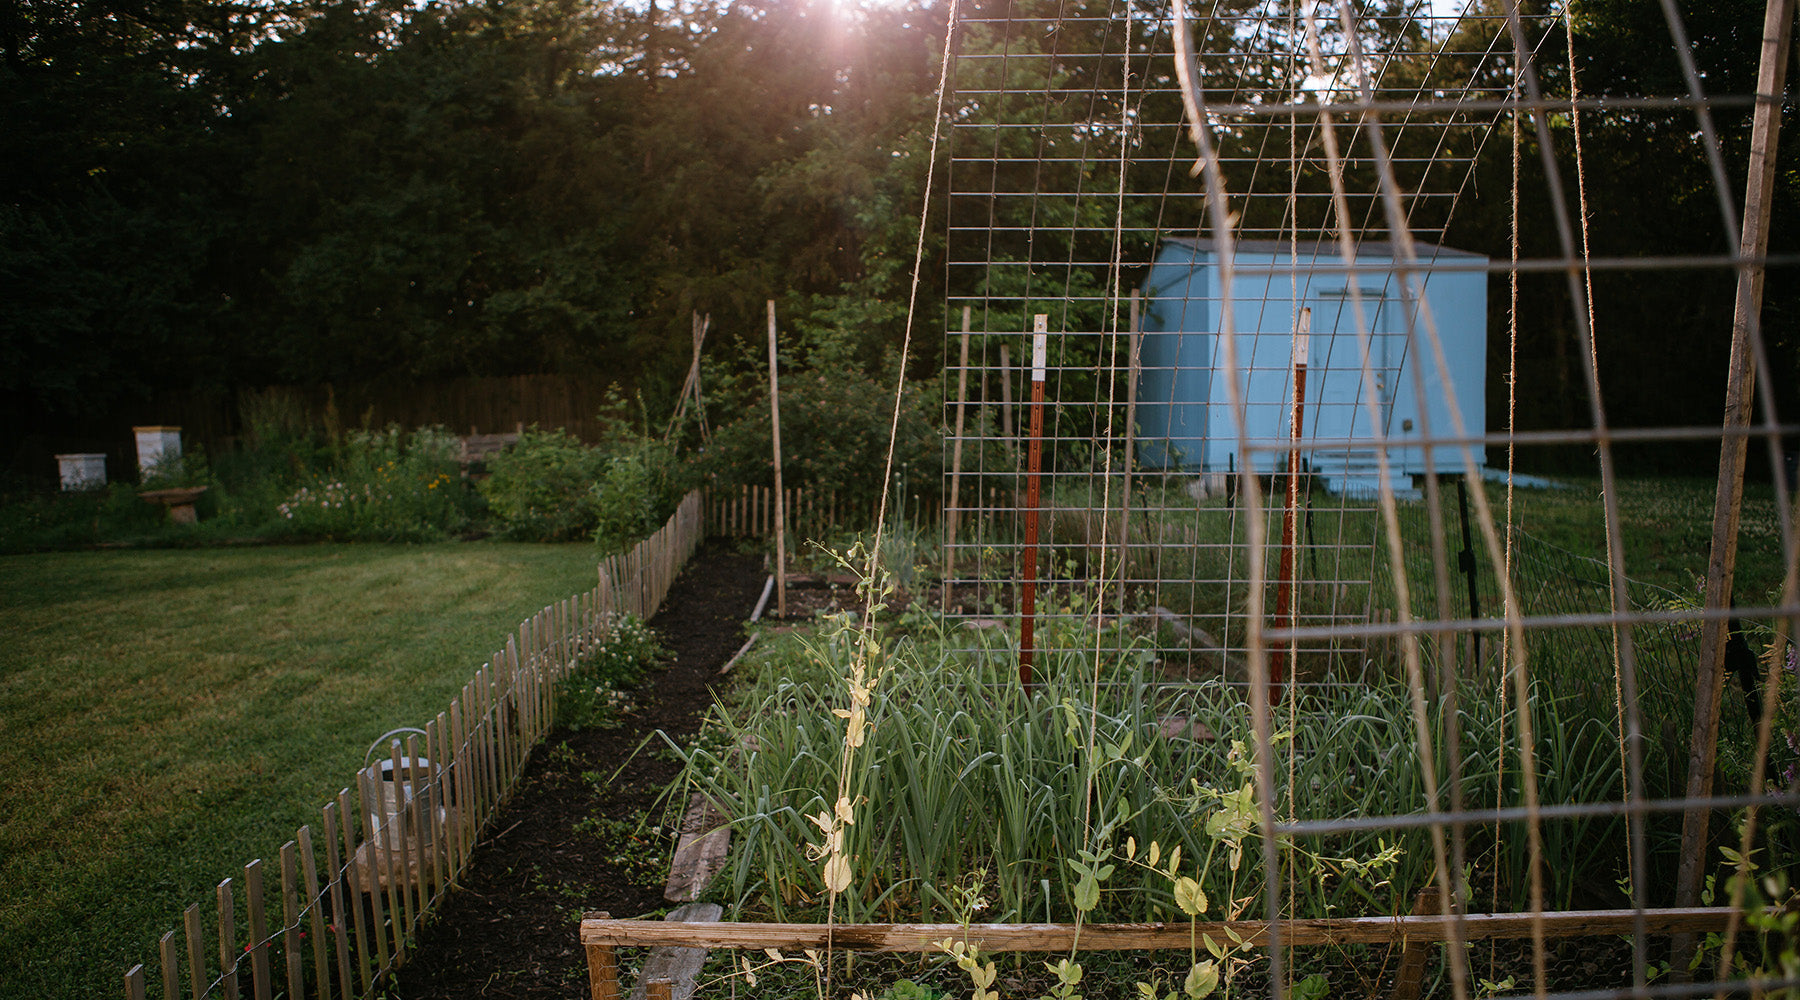 October | Getting The Most Out of Your Garden